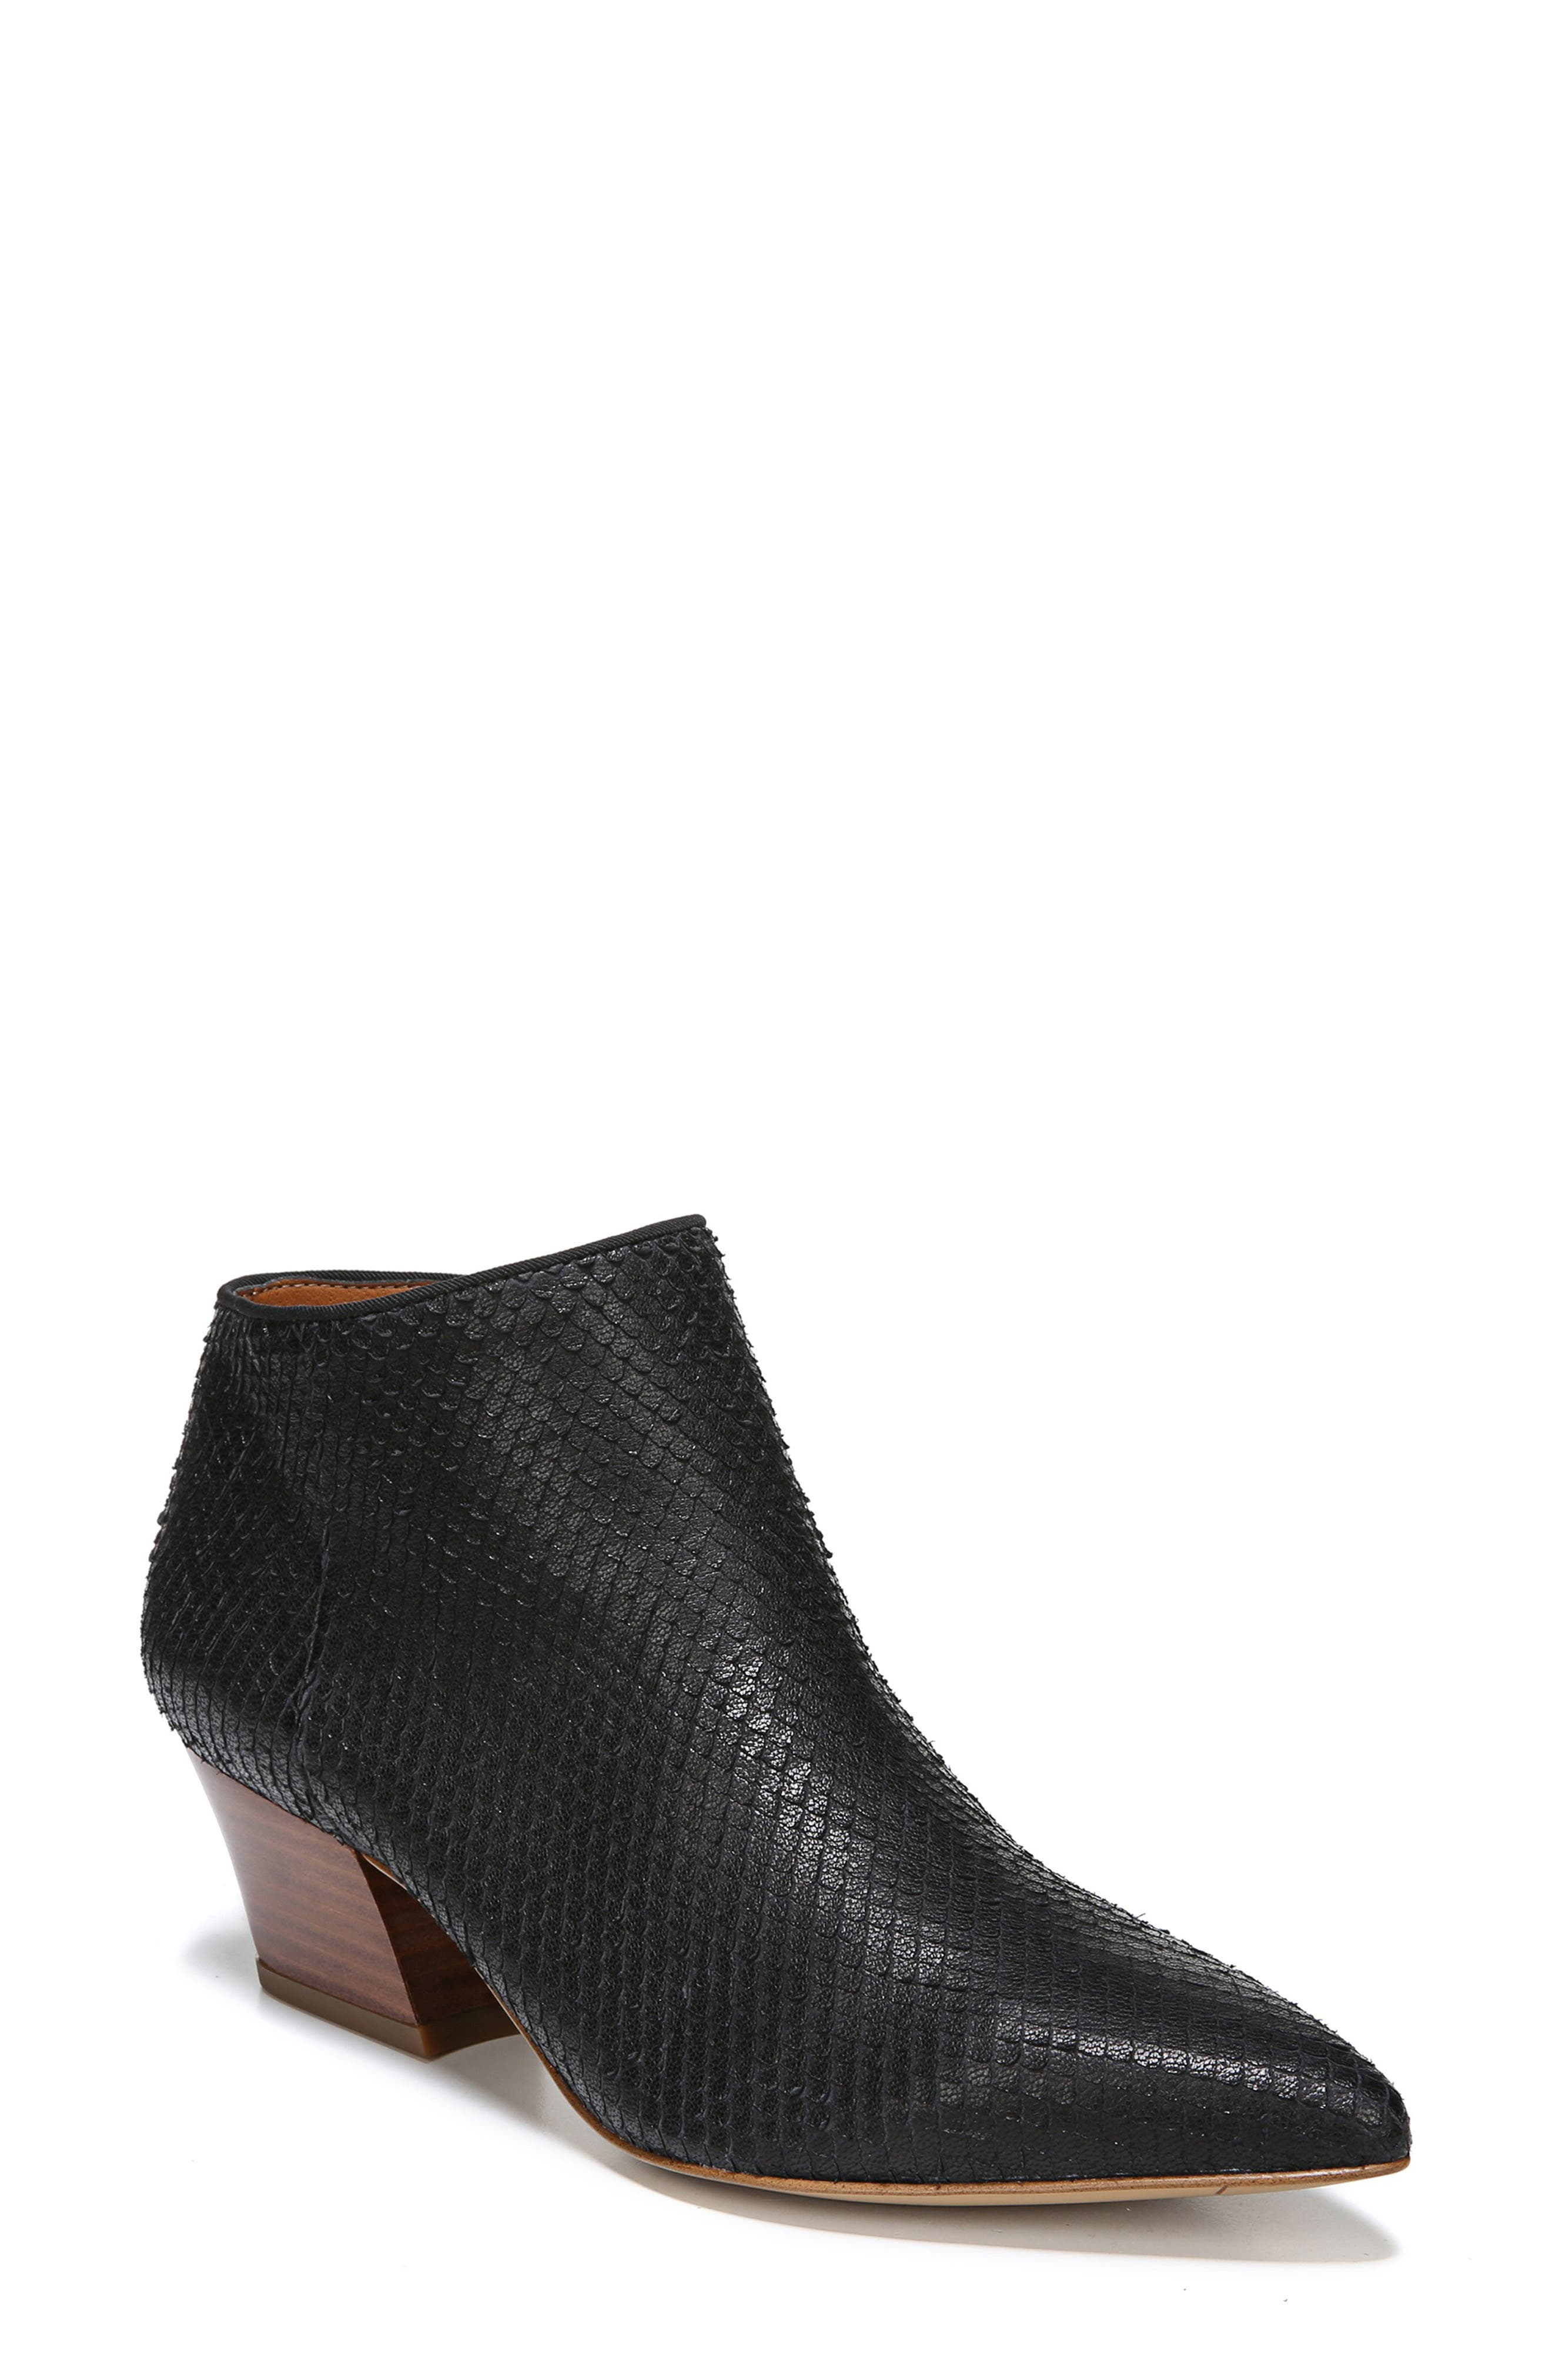 Lowe Bootie,                             Main thumbnail 1, color,                             BLACK SNAKE PRINT LEATHER